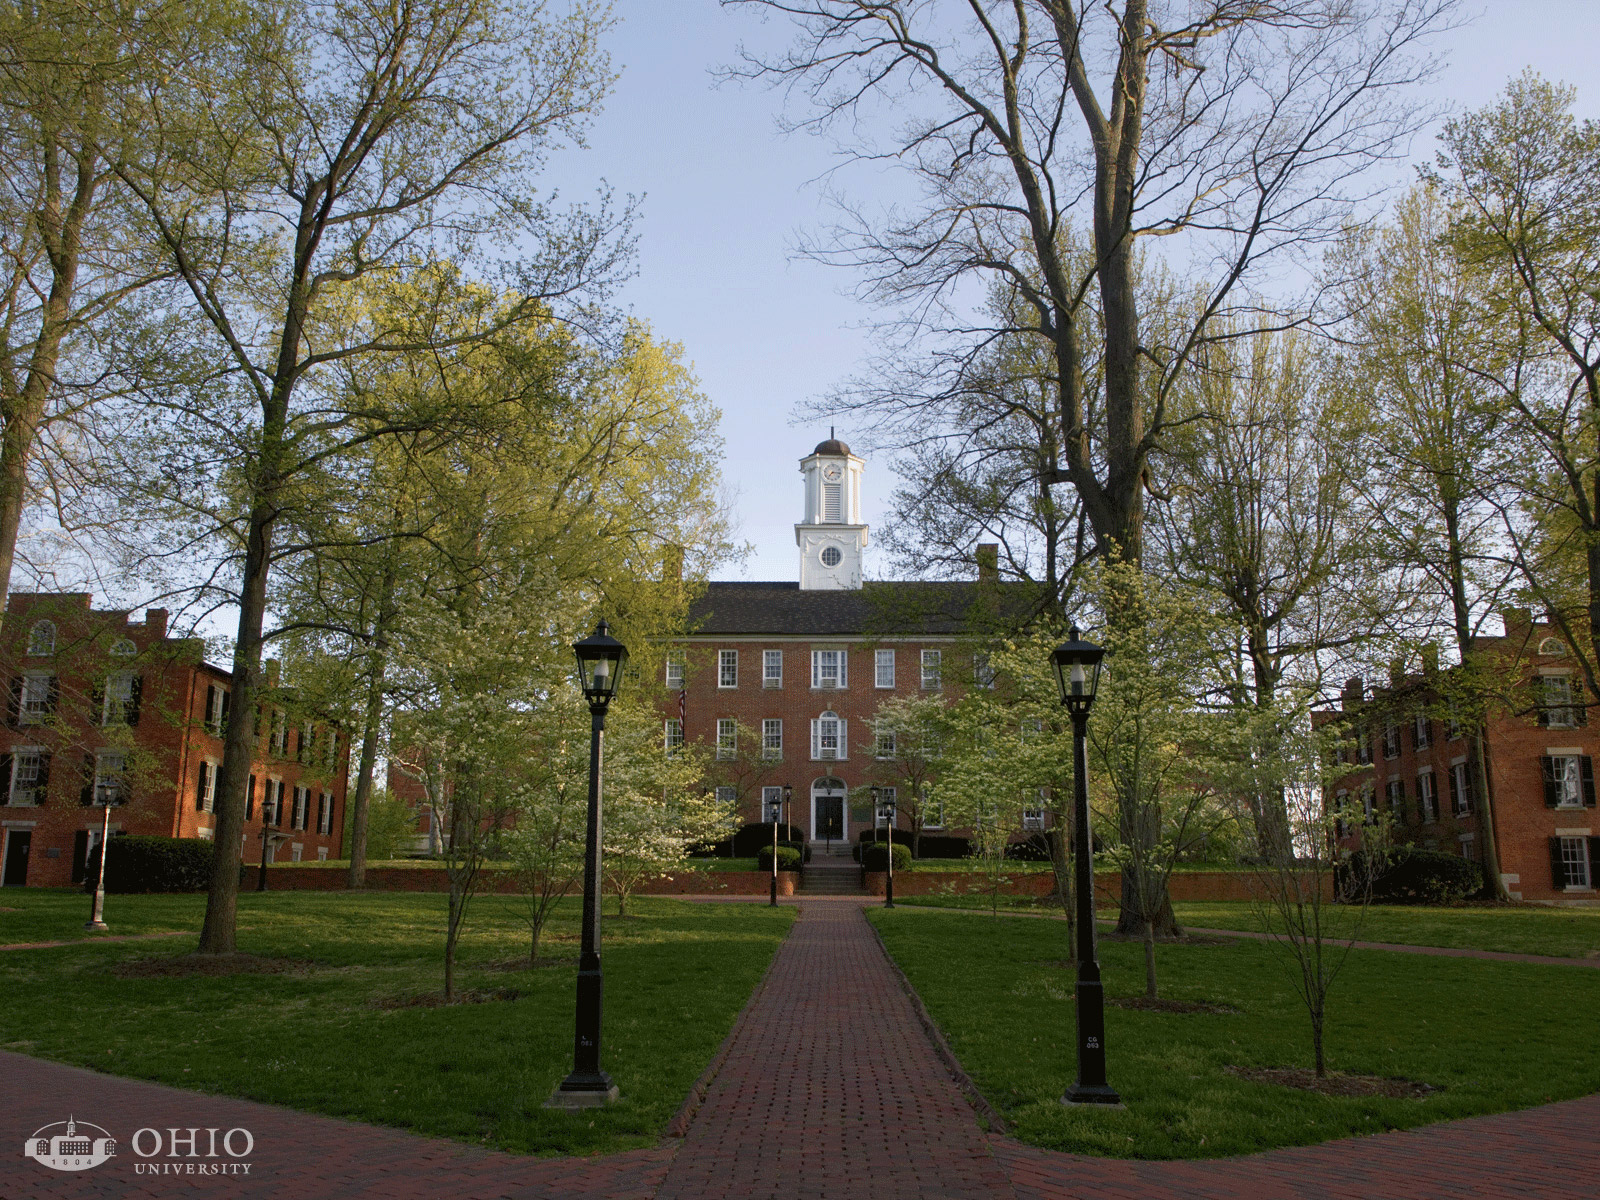 Ohio University Wallpaper